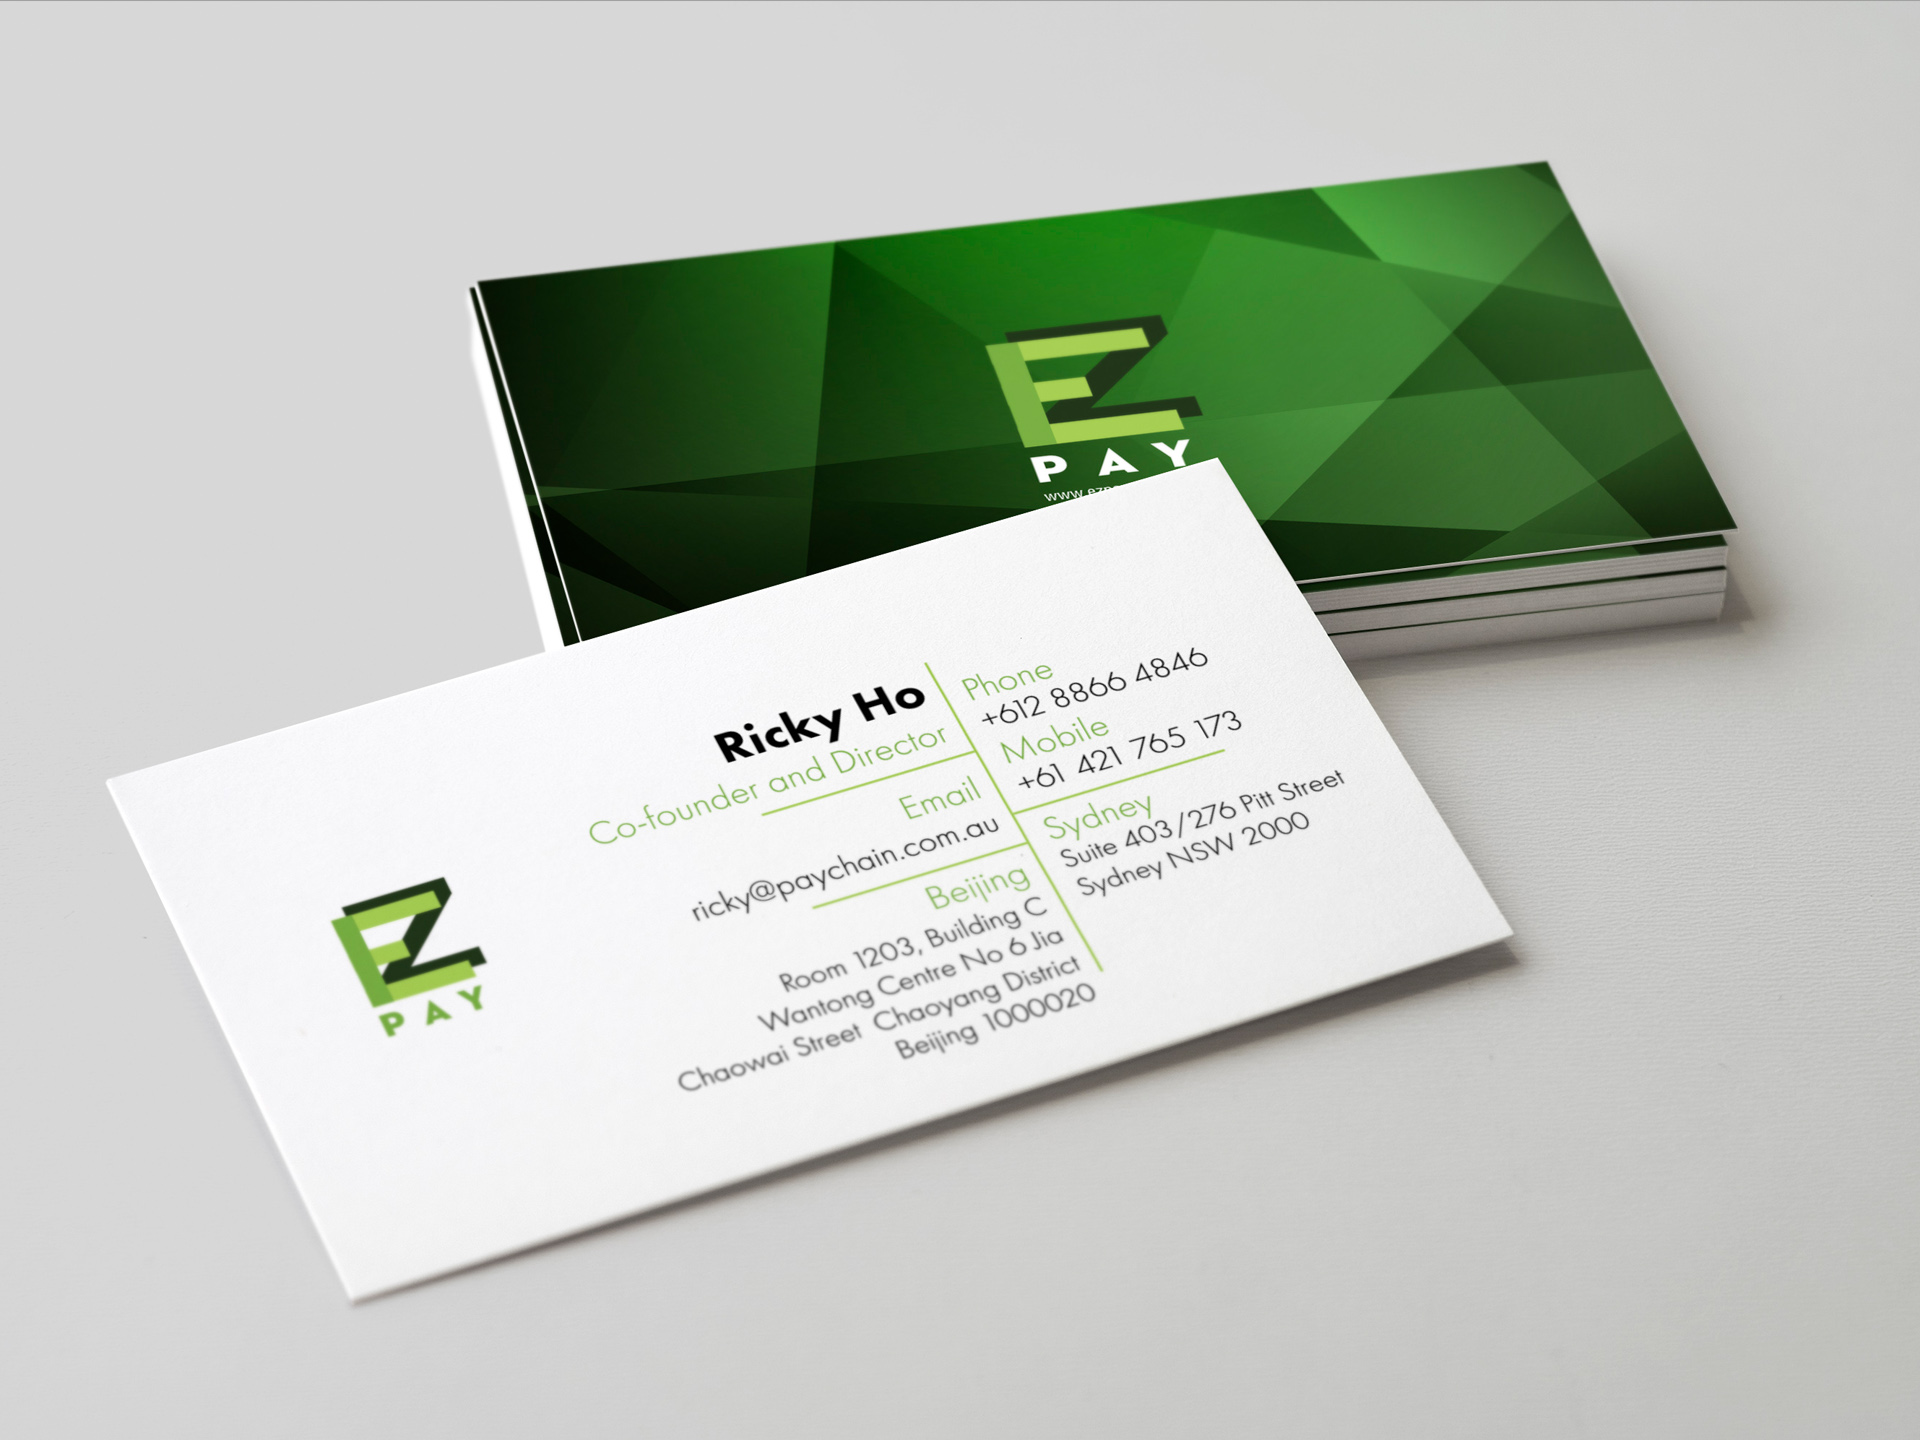 Colorful Business Card Founder Pictures - Business Card Ideas ...